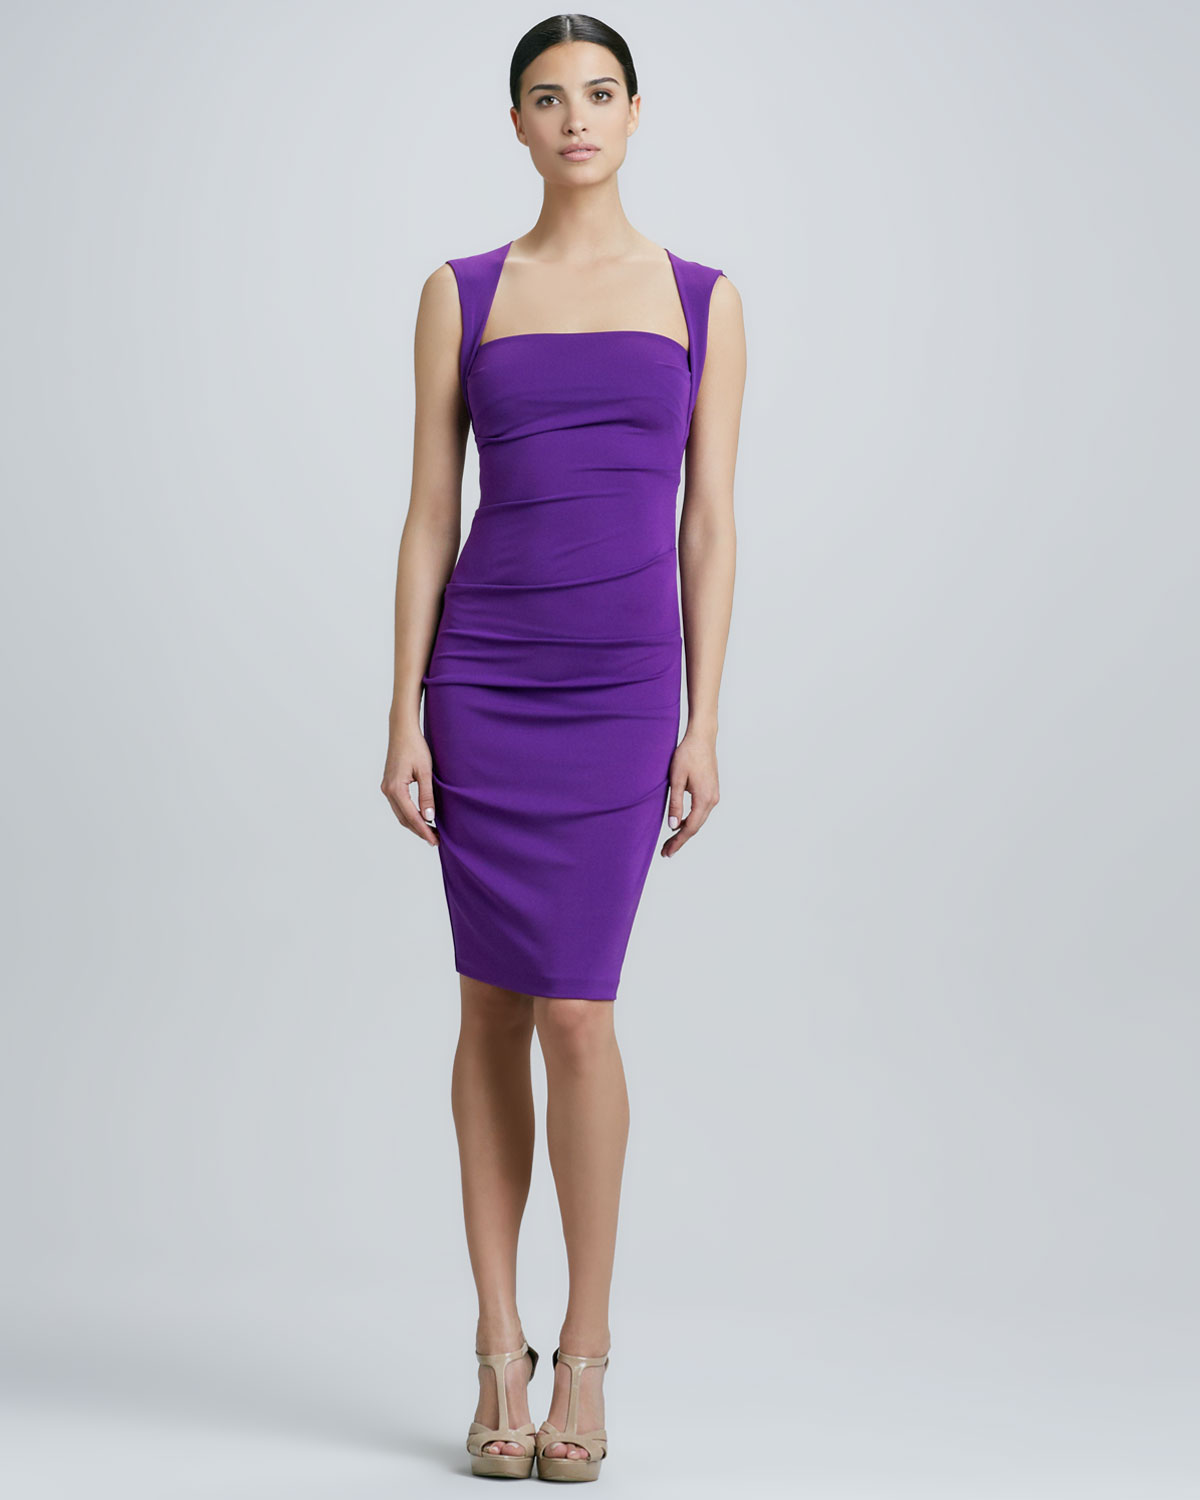 Lyst  Nicole Miller Squareneck Cocktail Dress in Purple